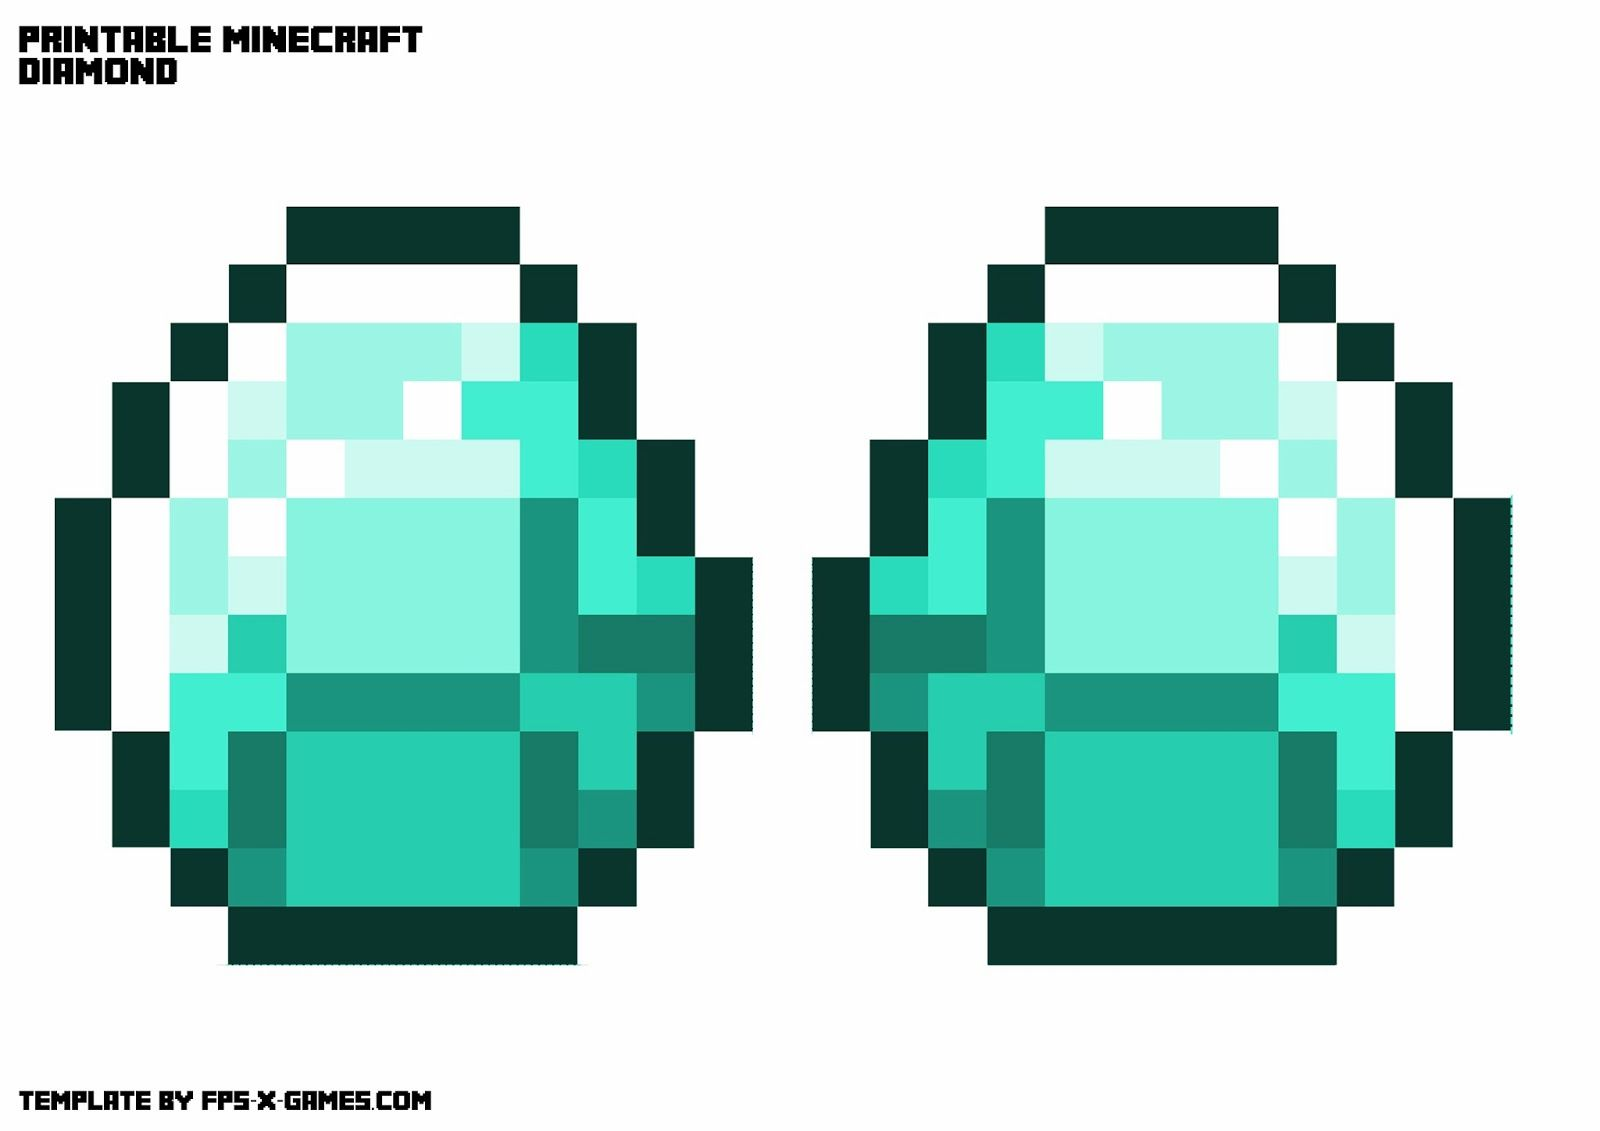 Minecraft Printable Diamond Imagenes De Minecraft Manualidades